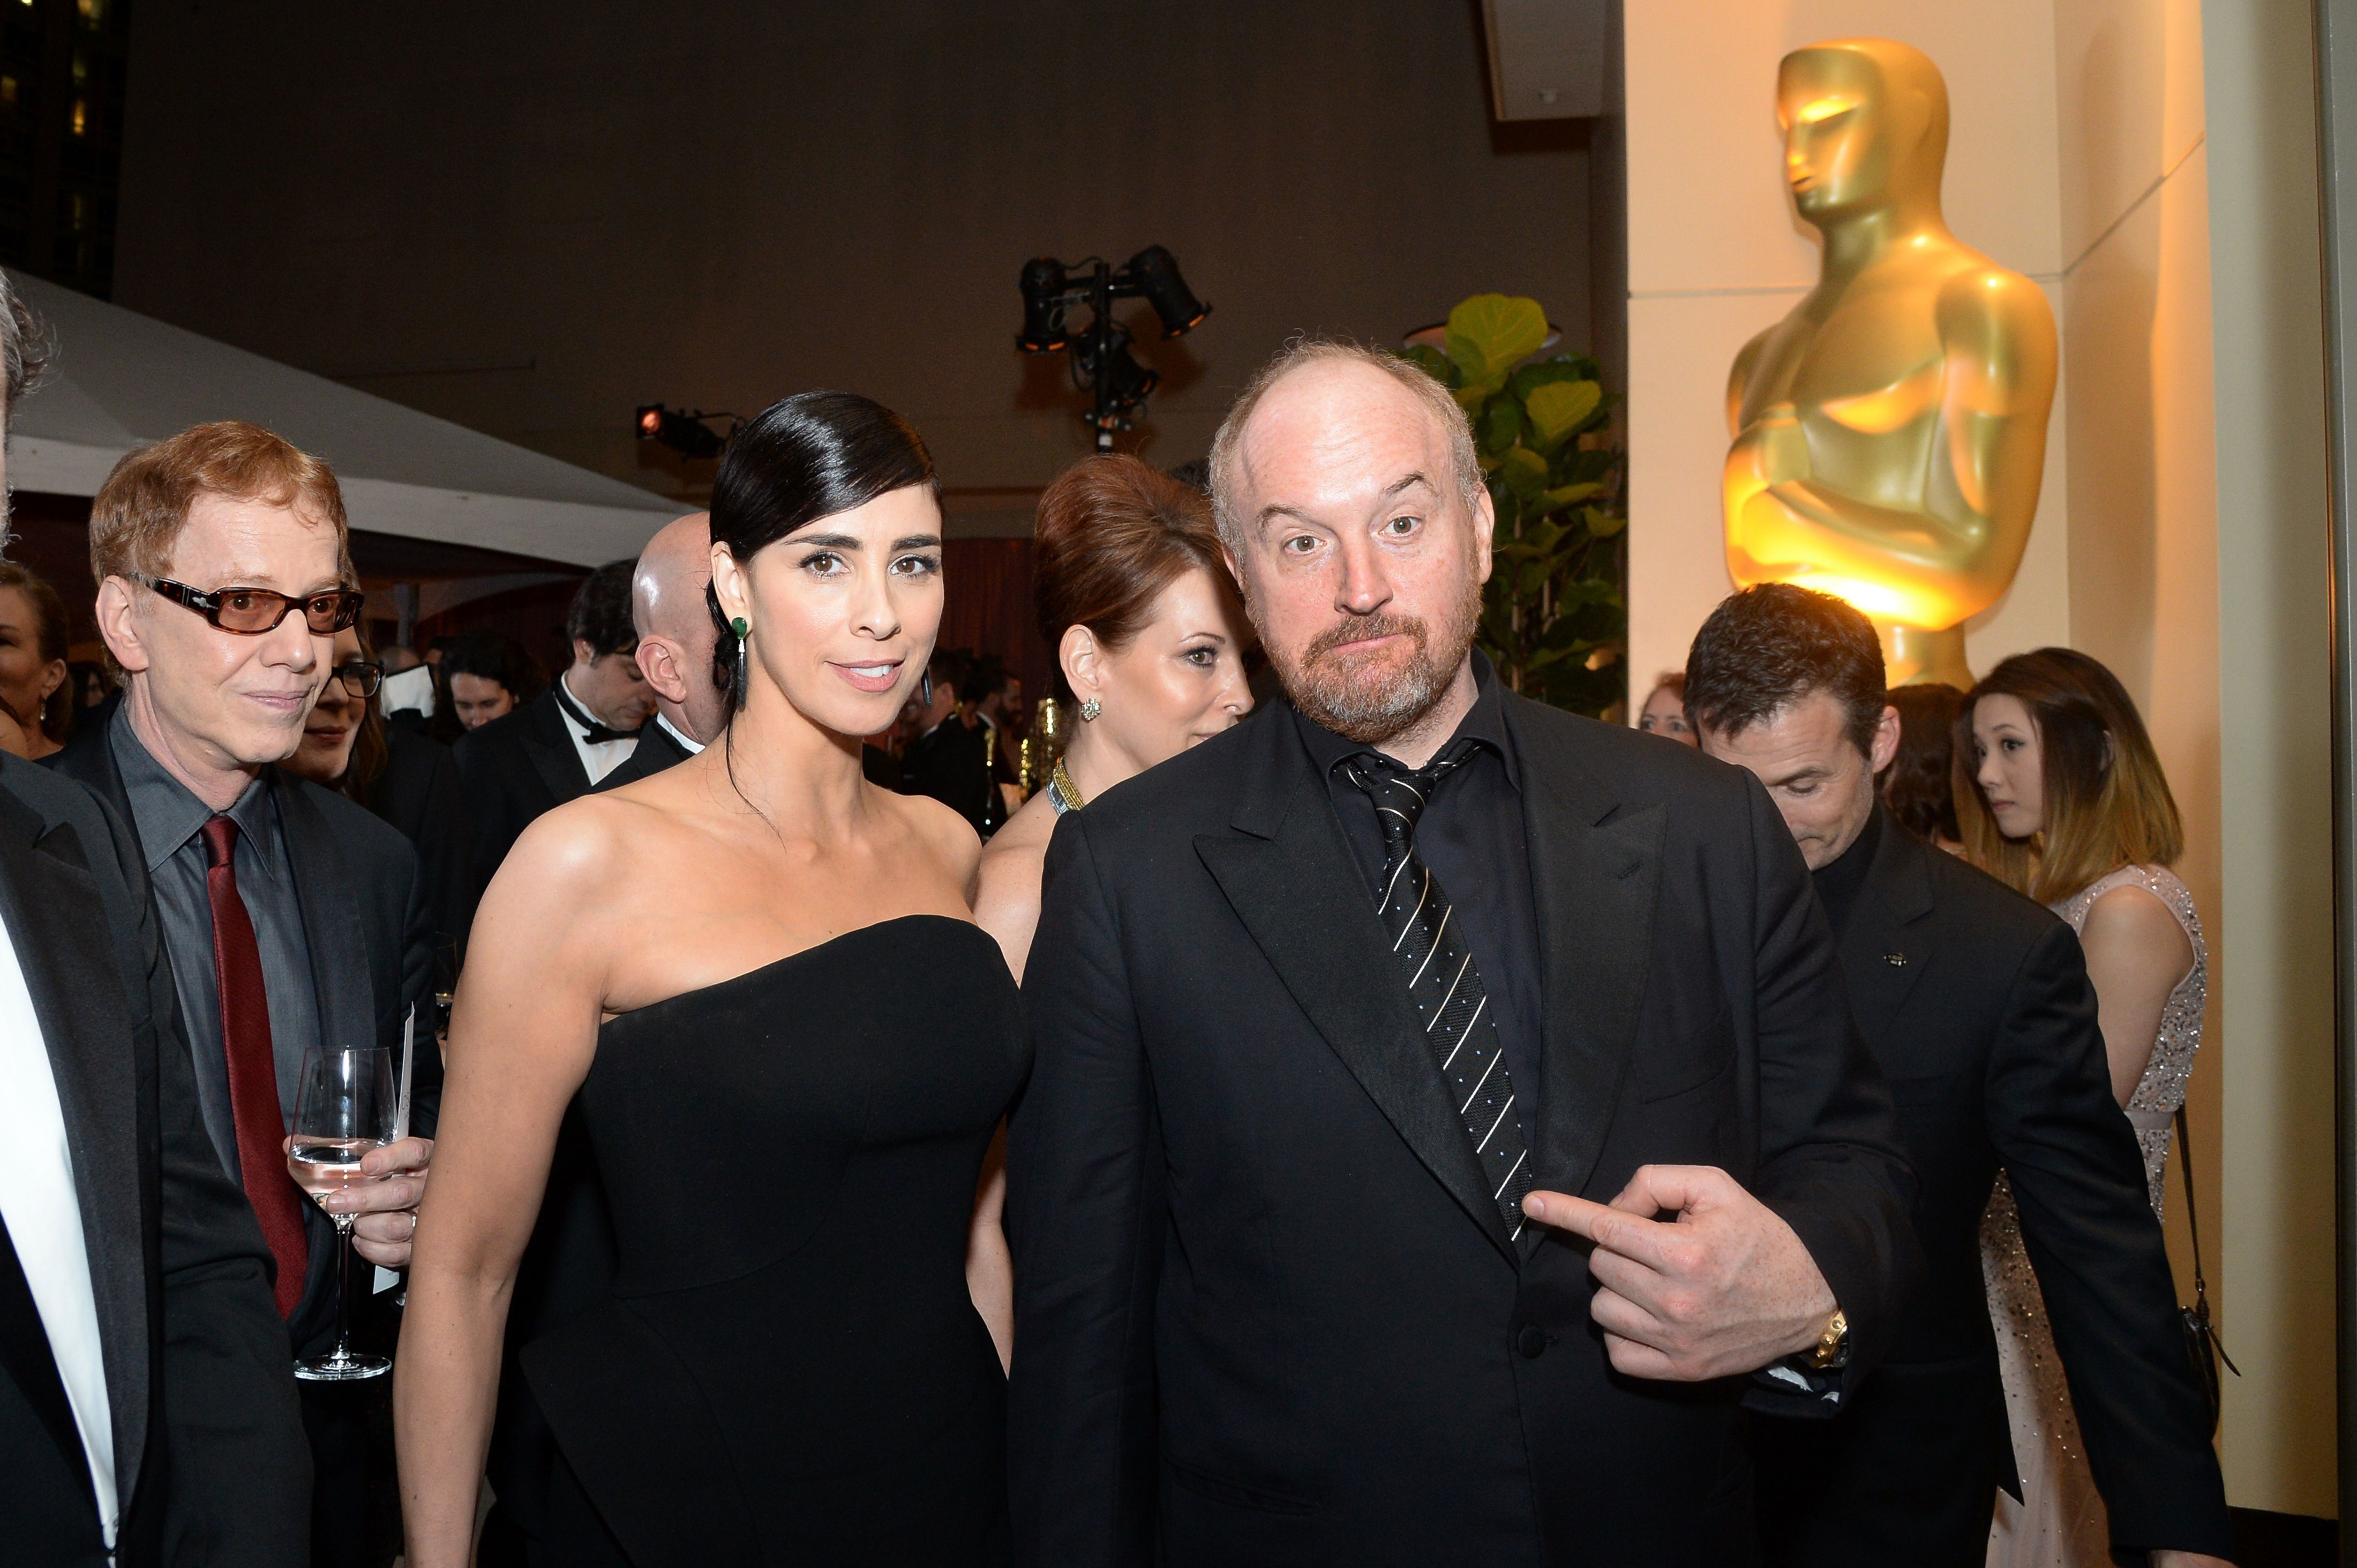 Sarah Silverman and Louis C.K. at the Oscars in 2016.Silverman said Louis C.K. used to masturbate in front of her when